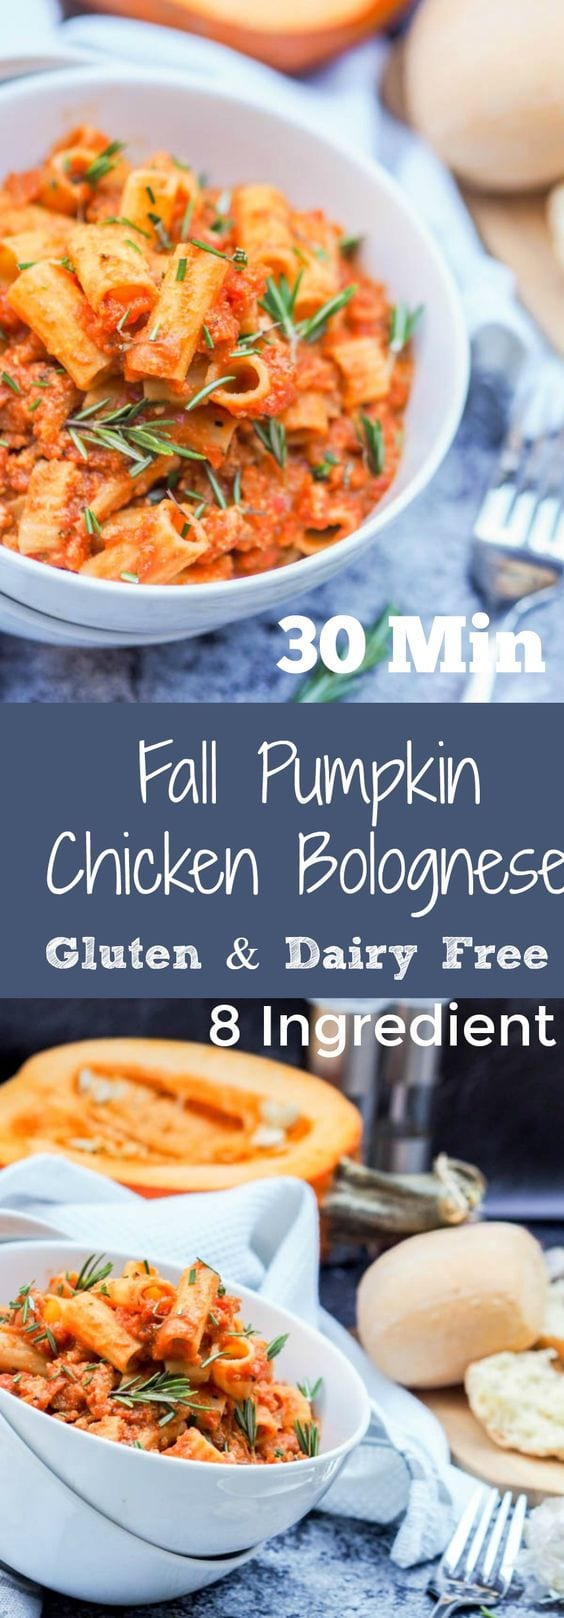 Only eight ingredients needed for this 30 minute fall weeknight favorite Chicken Bolognese with Pumpkin and Rosemary. The ultimate easy to make comfort meal. Pasta for the win. Dinner is served.  #ad @Walmart #pickedatpeak #pasta #chicken #pumpkin #healthy #dinner